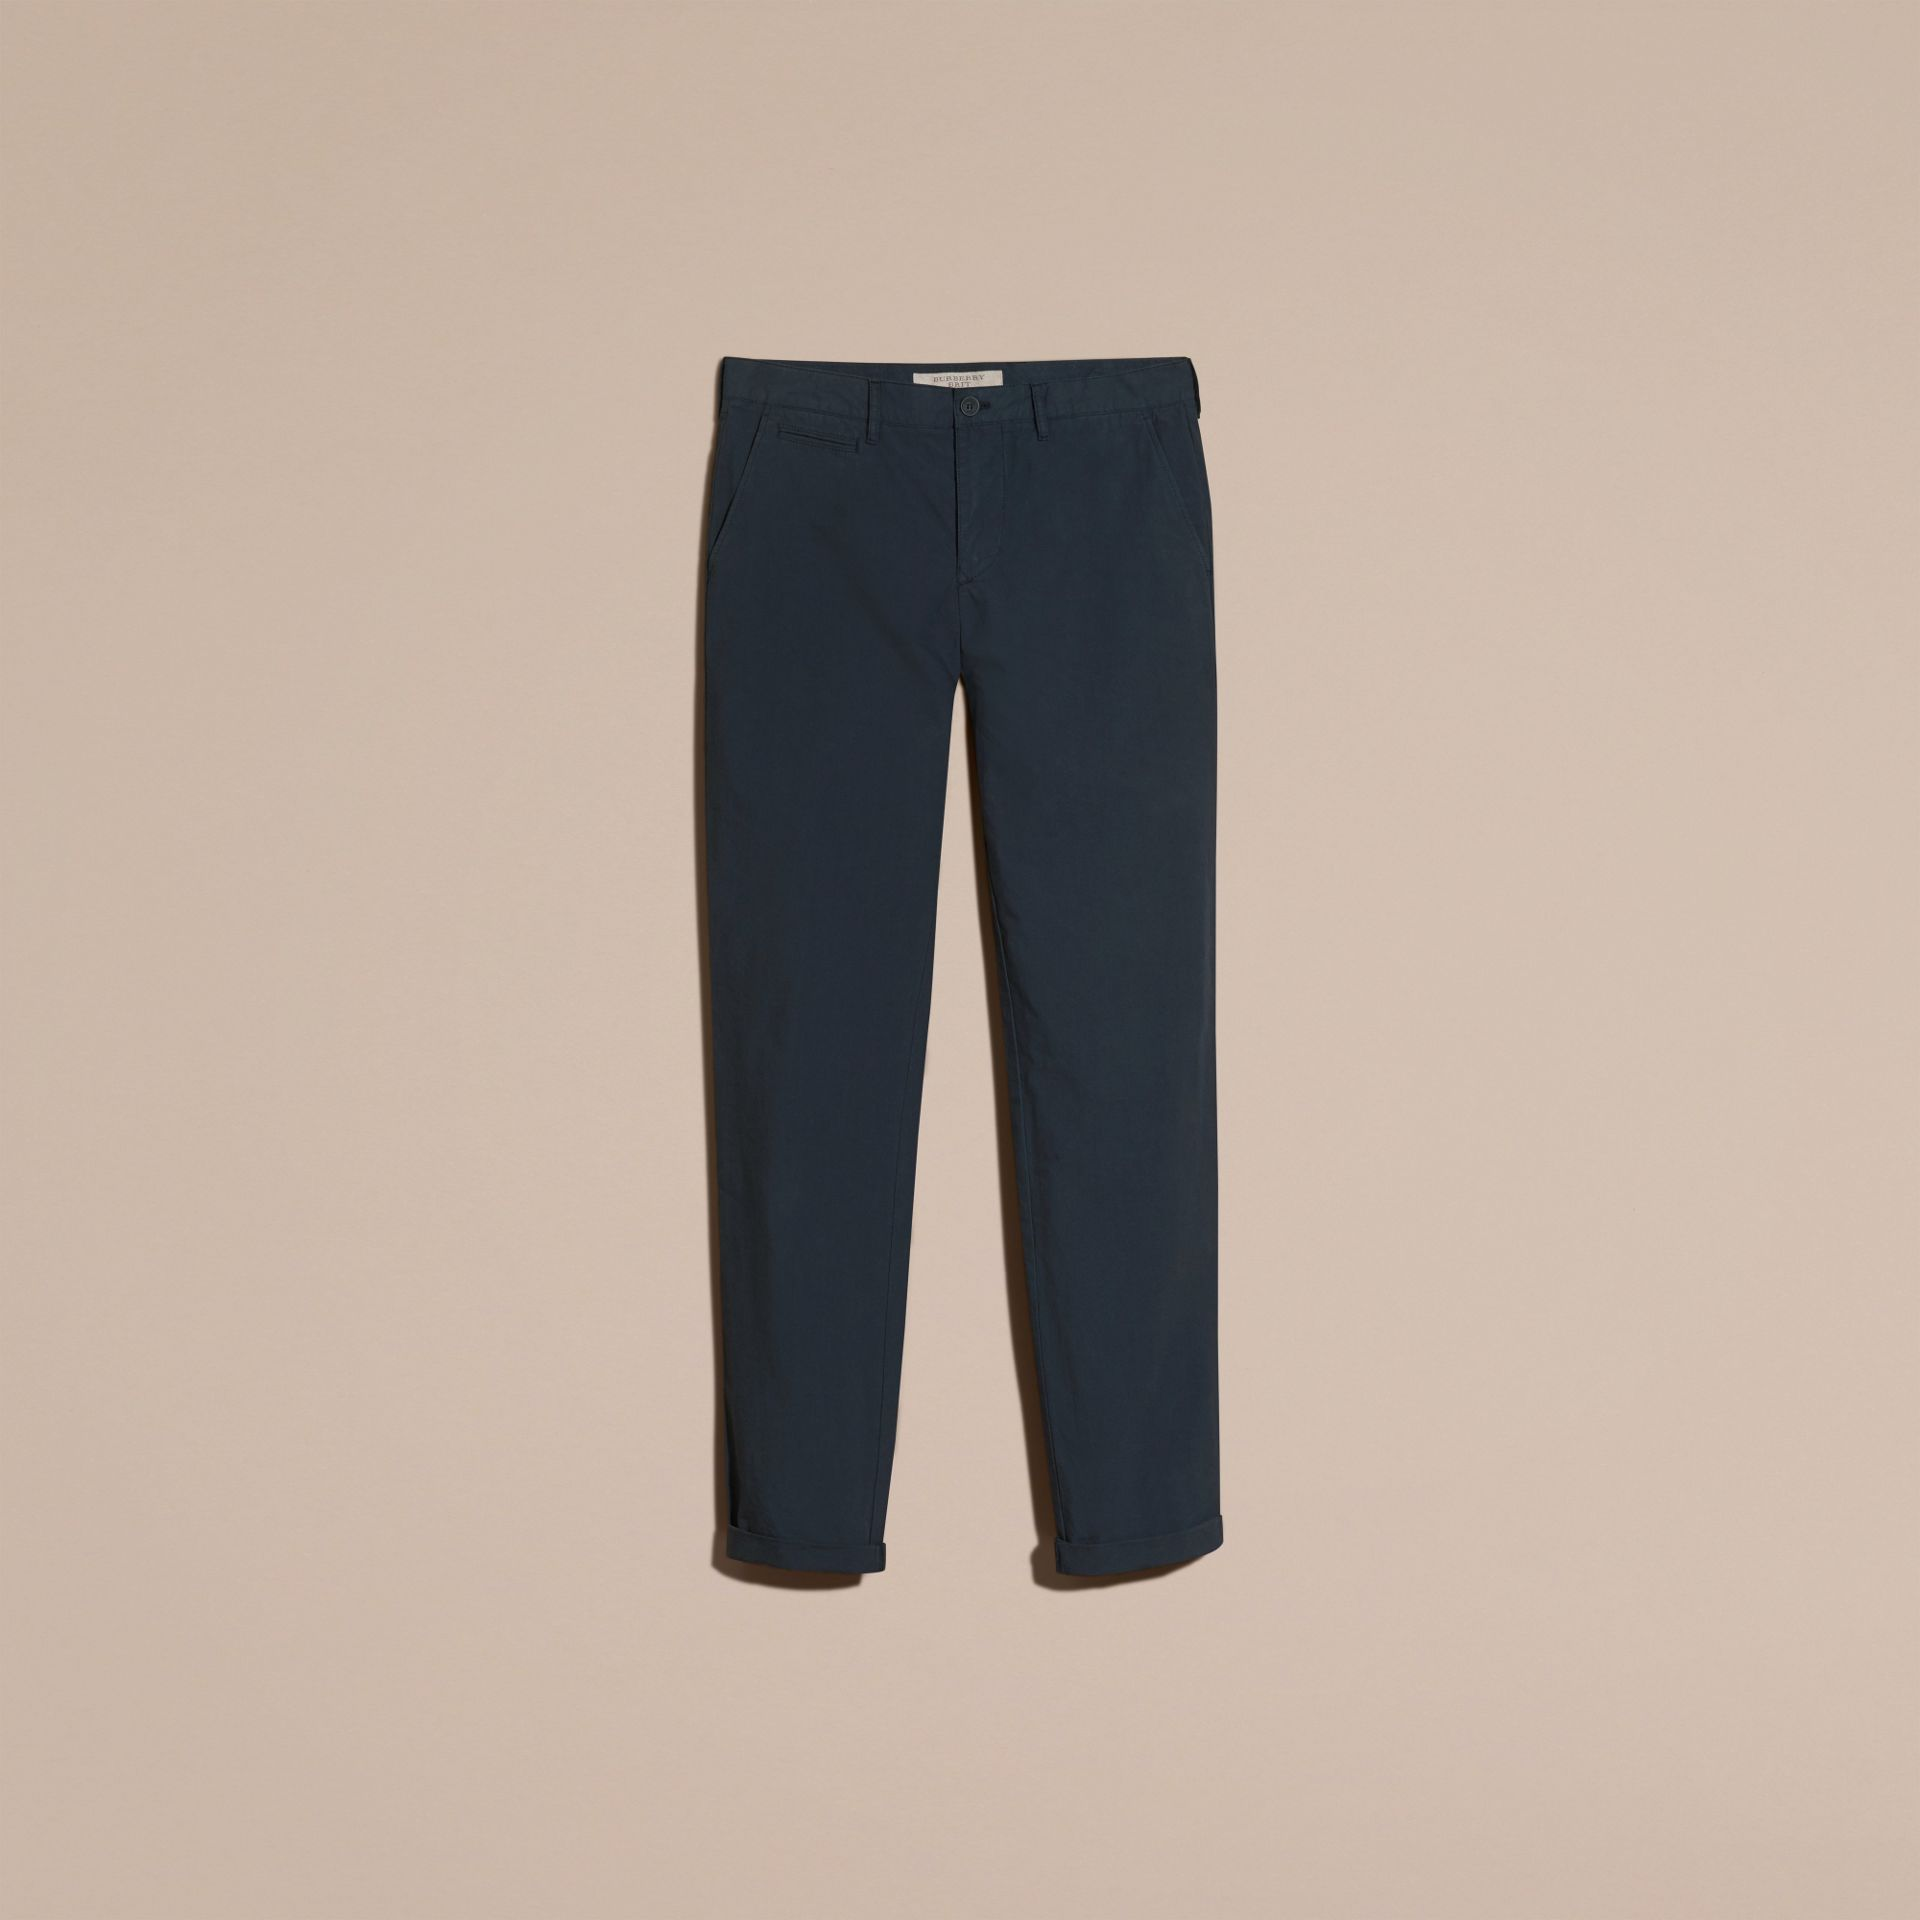 Slim Fit Cotton Poplin Chinos in Indigo - Men | Burberry United Kingdom - gallery image 3